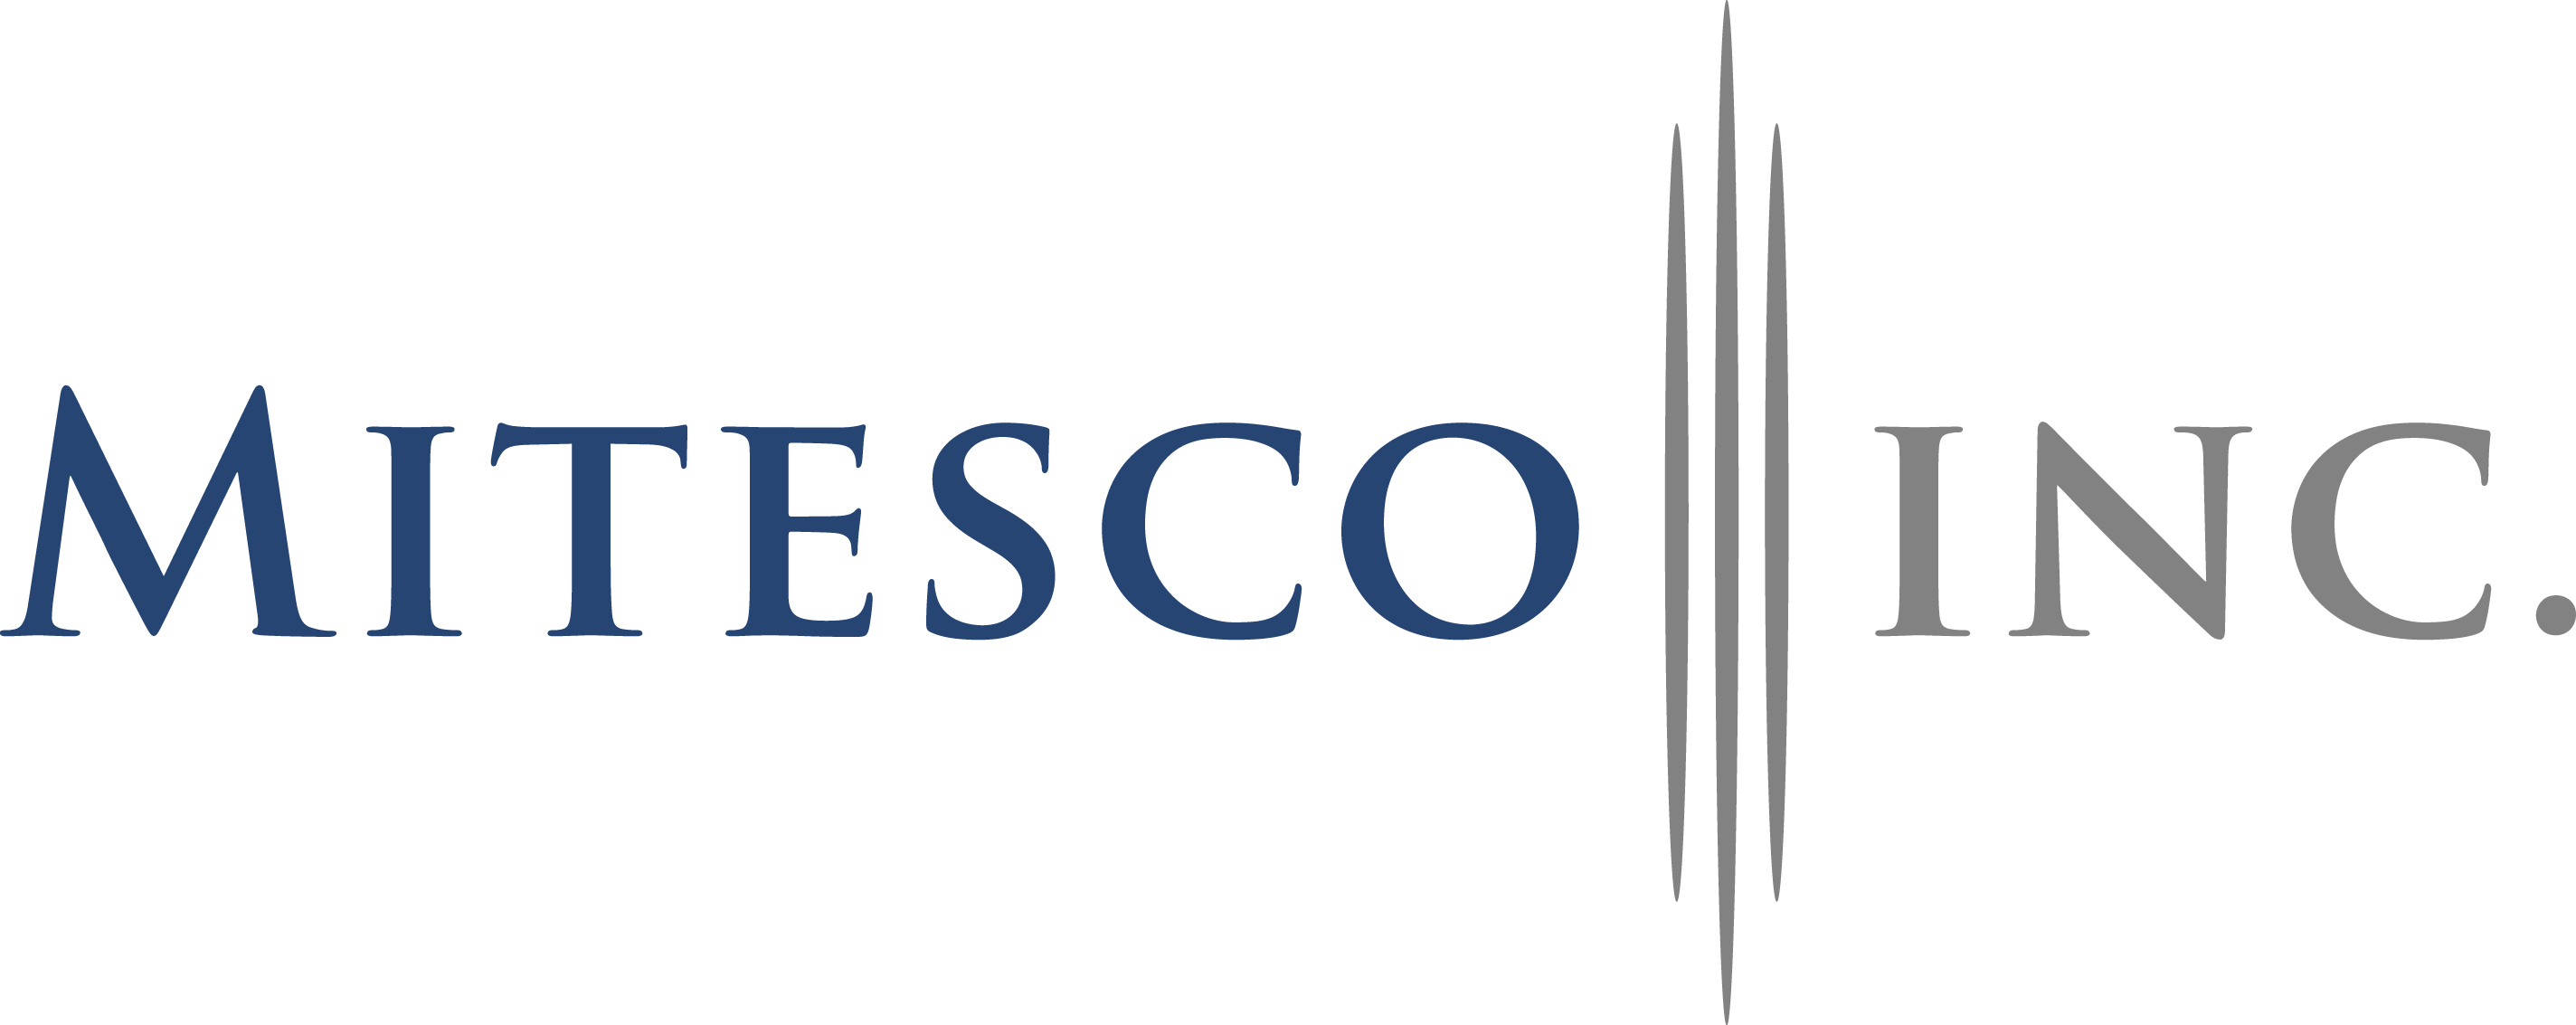 Mitesco, Inc.